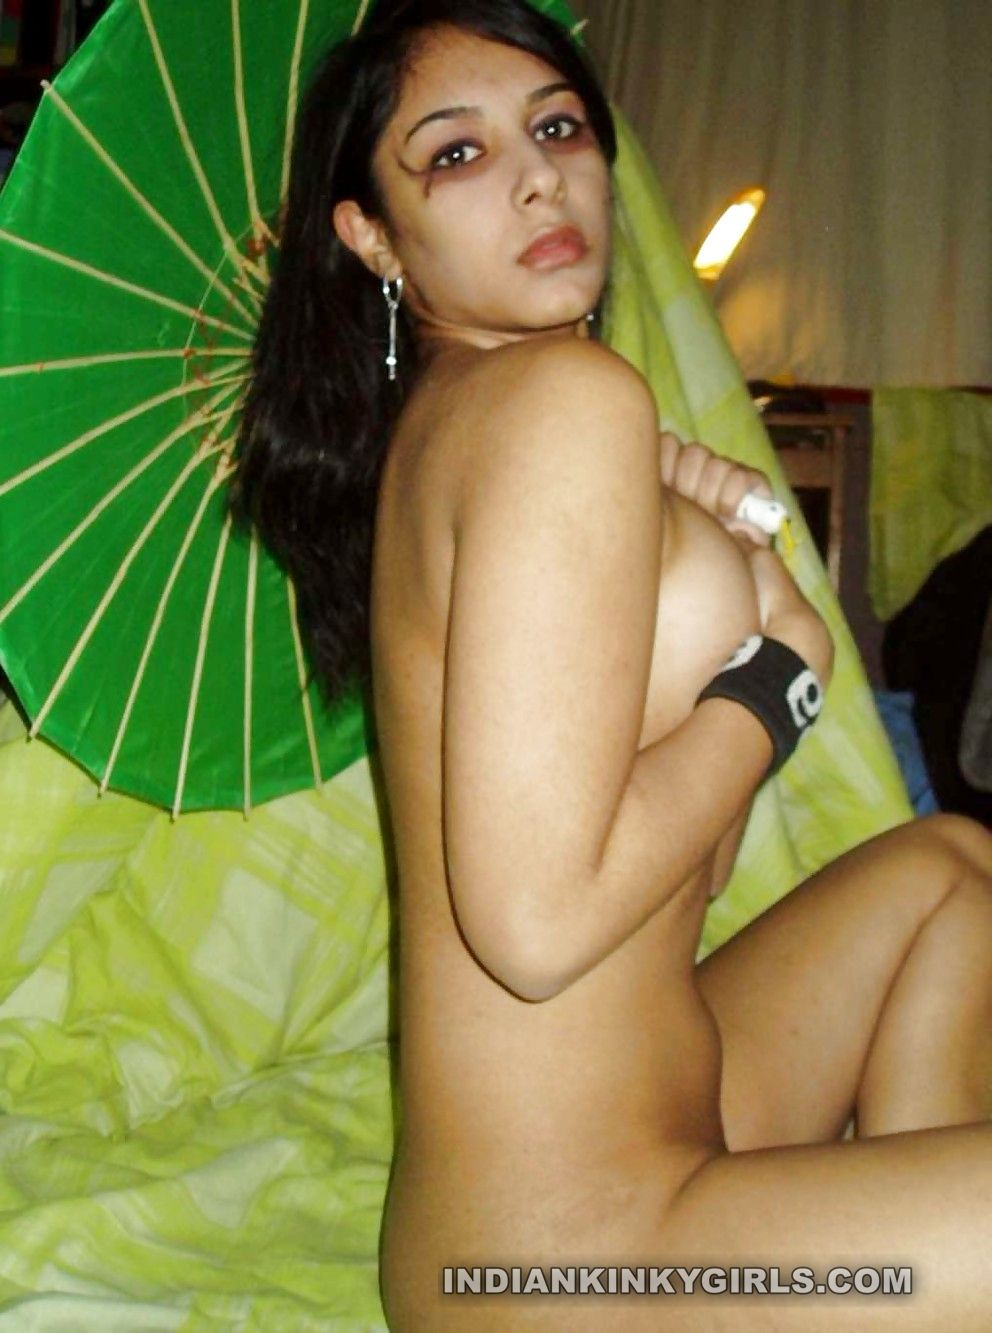 seductive indian girl doing nude photos at home